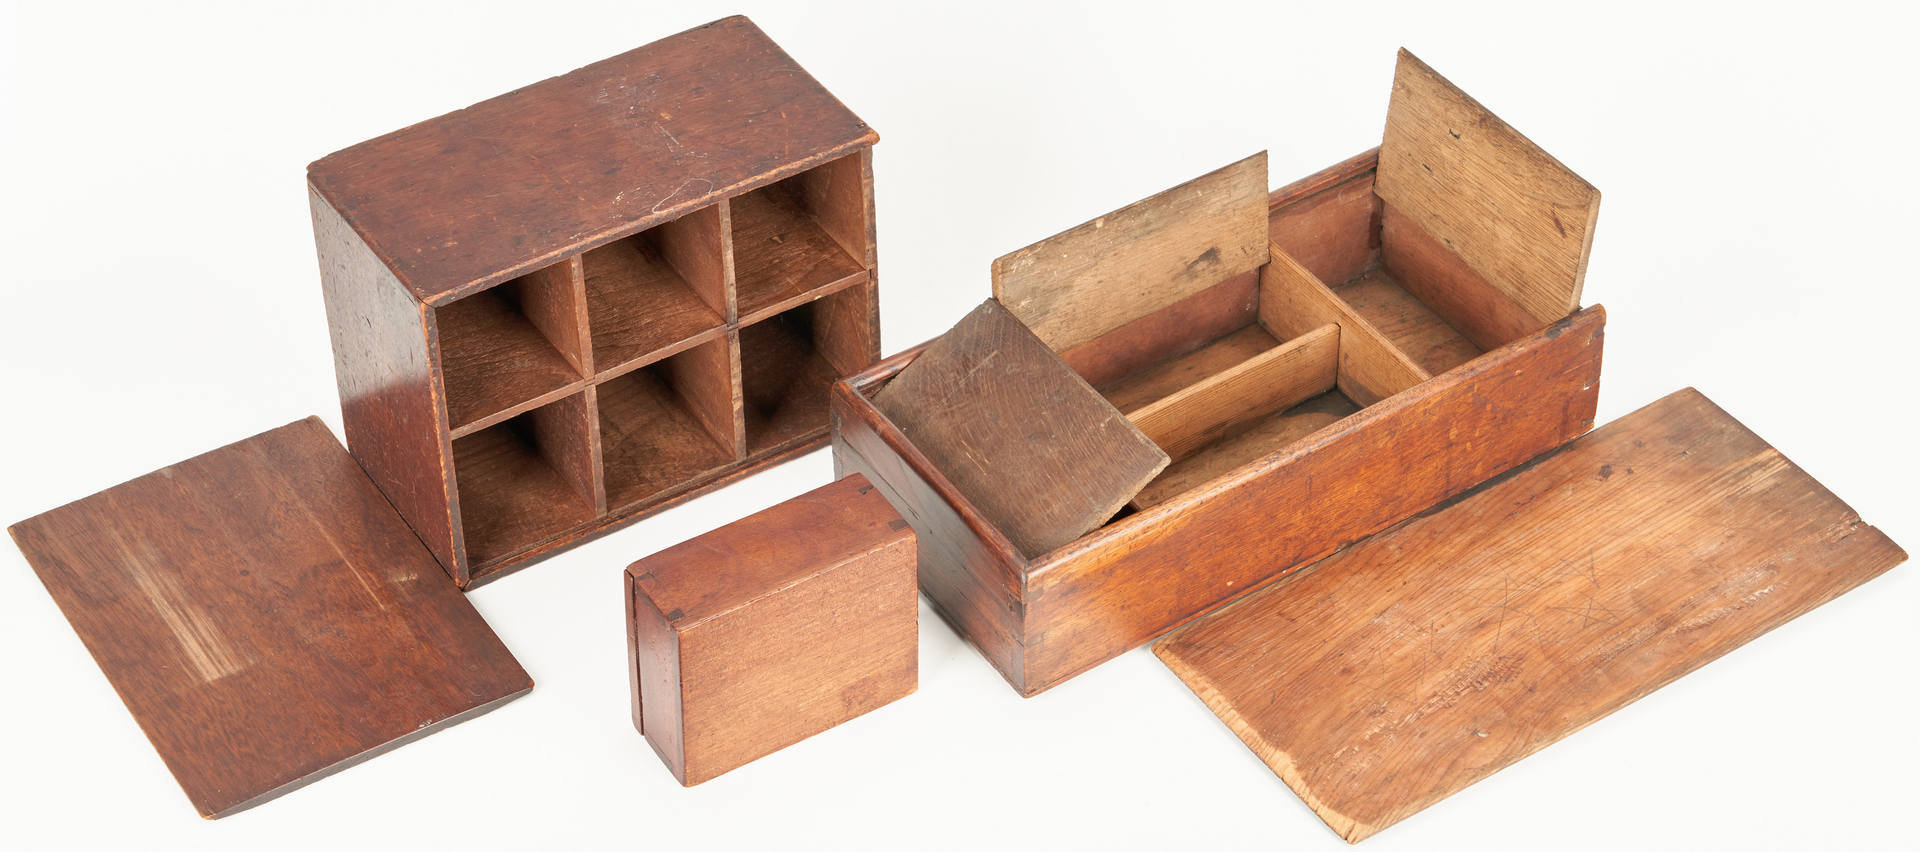 Lot 391: 5 Wooden Storage Boxes, incl. Painted Candle Box